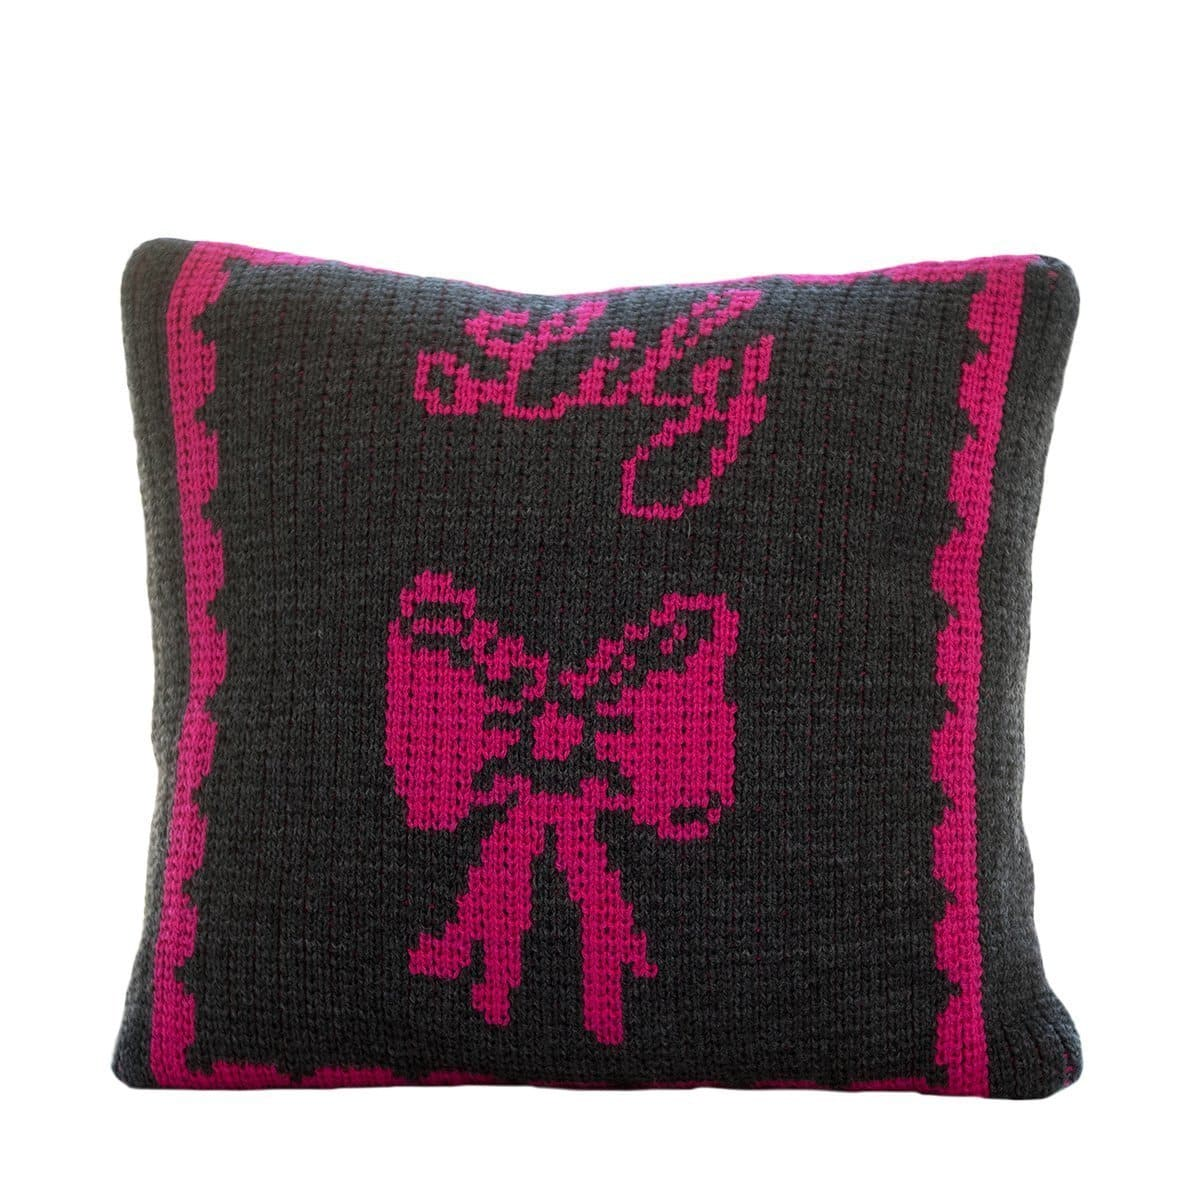 Bow & Name Personalized Pillow-Pillow-Default-Jack and Jill Boutique